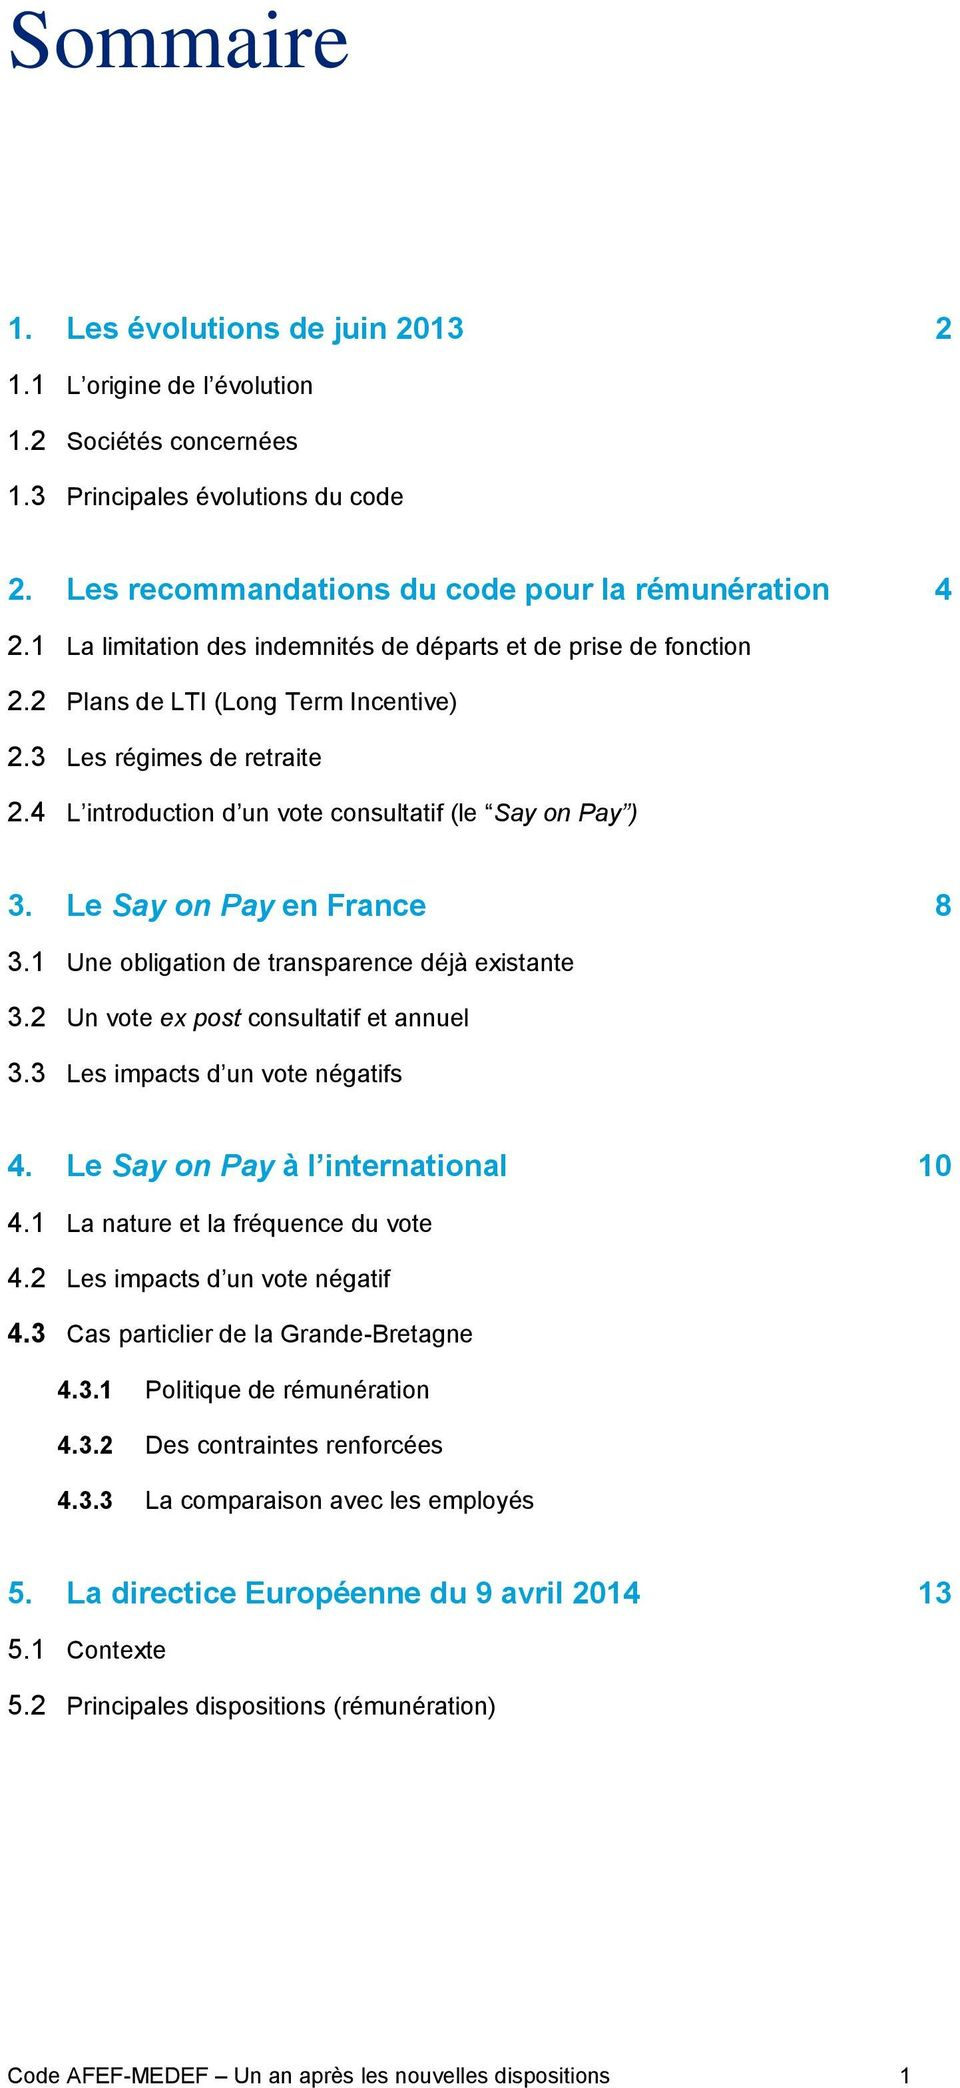 Le Say on Pay en France 8 3.1 Une obligation de transparence déjà existante 3.2 Un vote ex post consultatif et annuel 3.3 Les impacts d un vote négatifs 4. Le Say on Pay à l international 10 4.